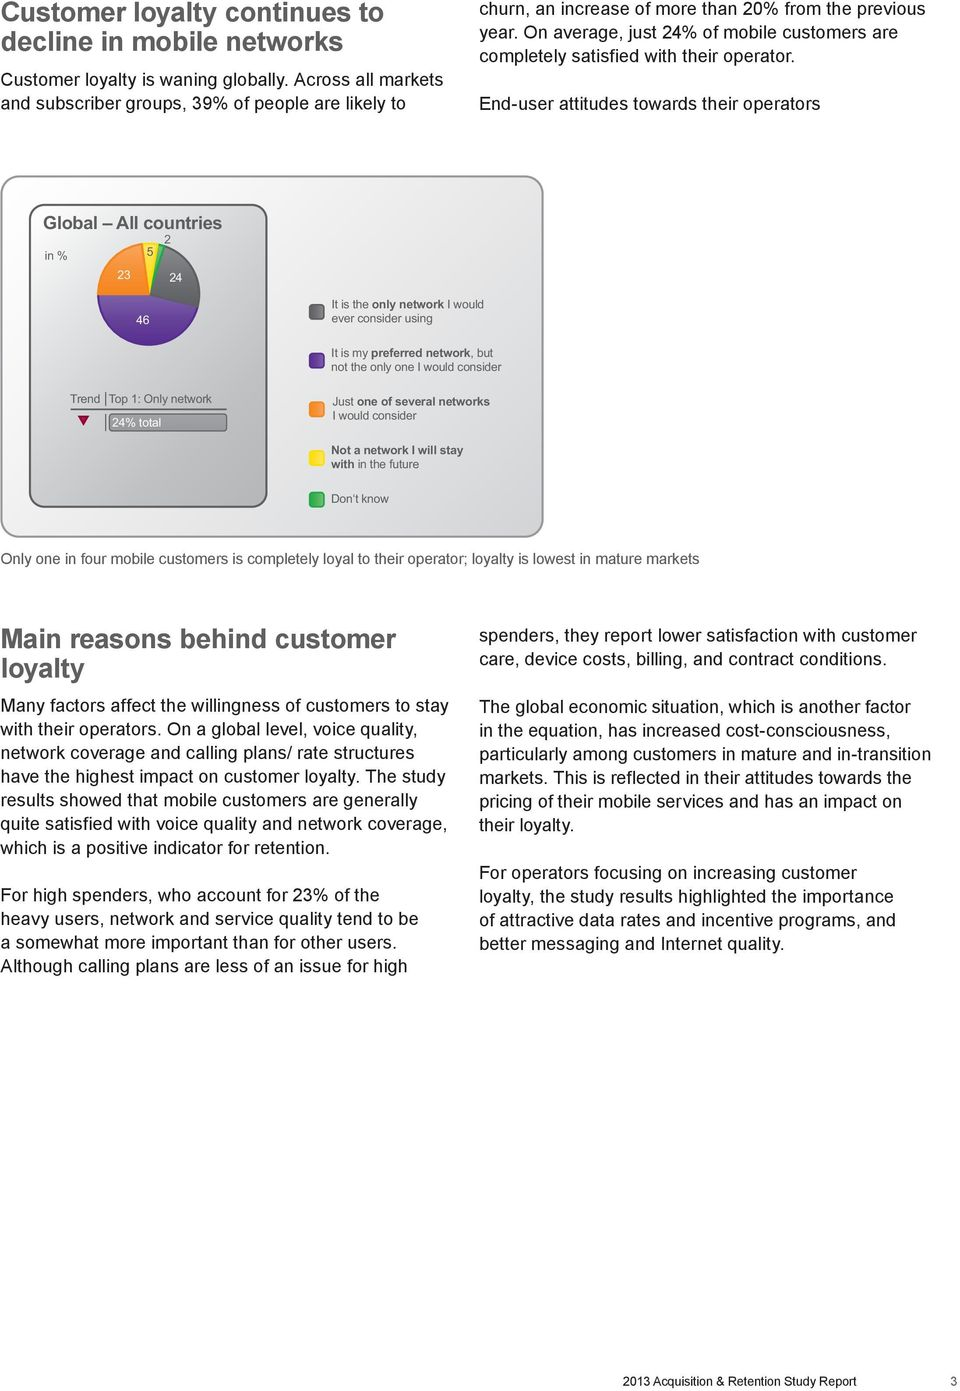 On average, just 24% of mobile customers are completely satisfied with their operator.